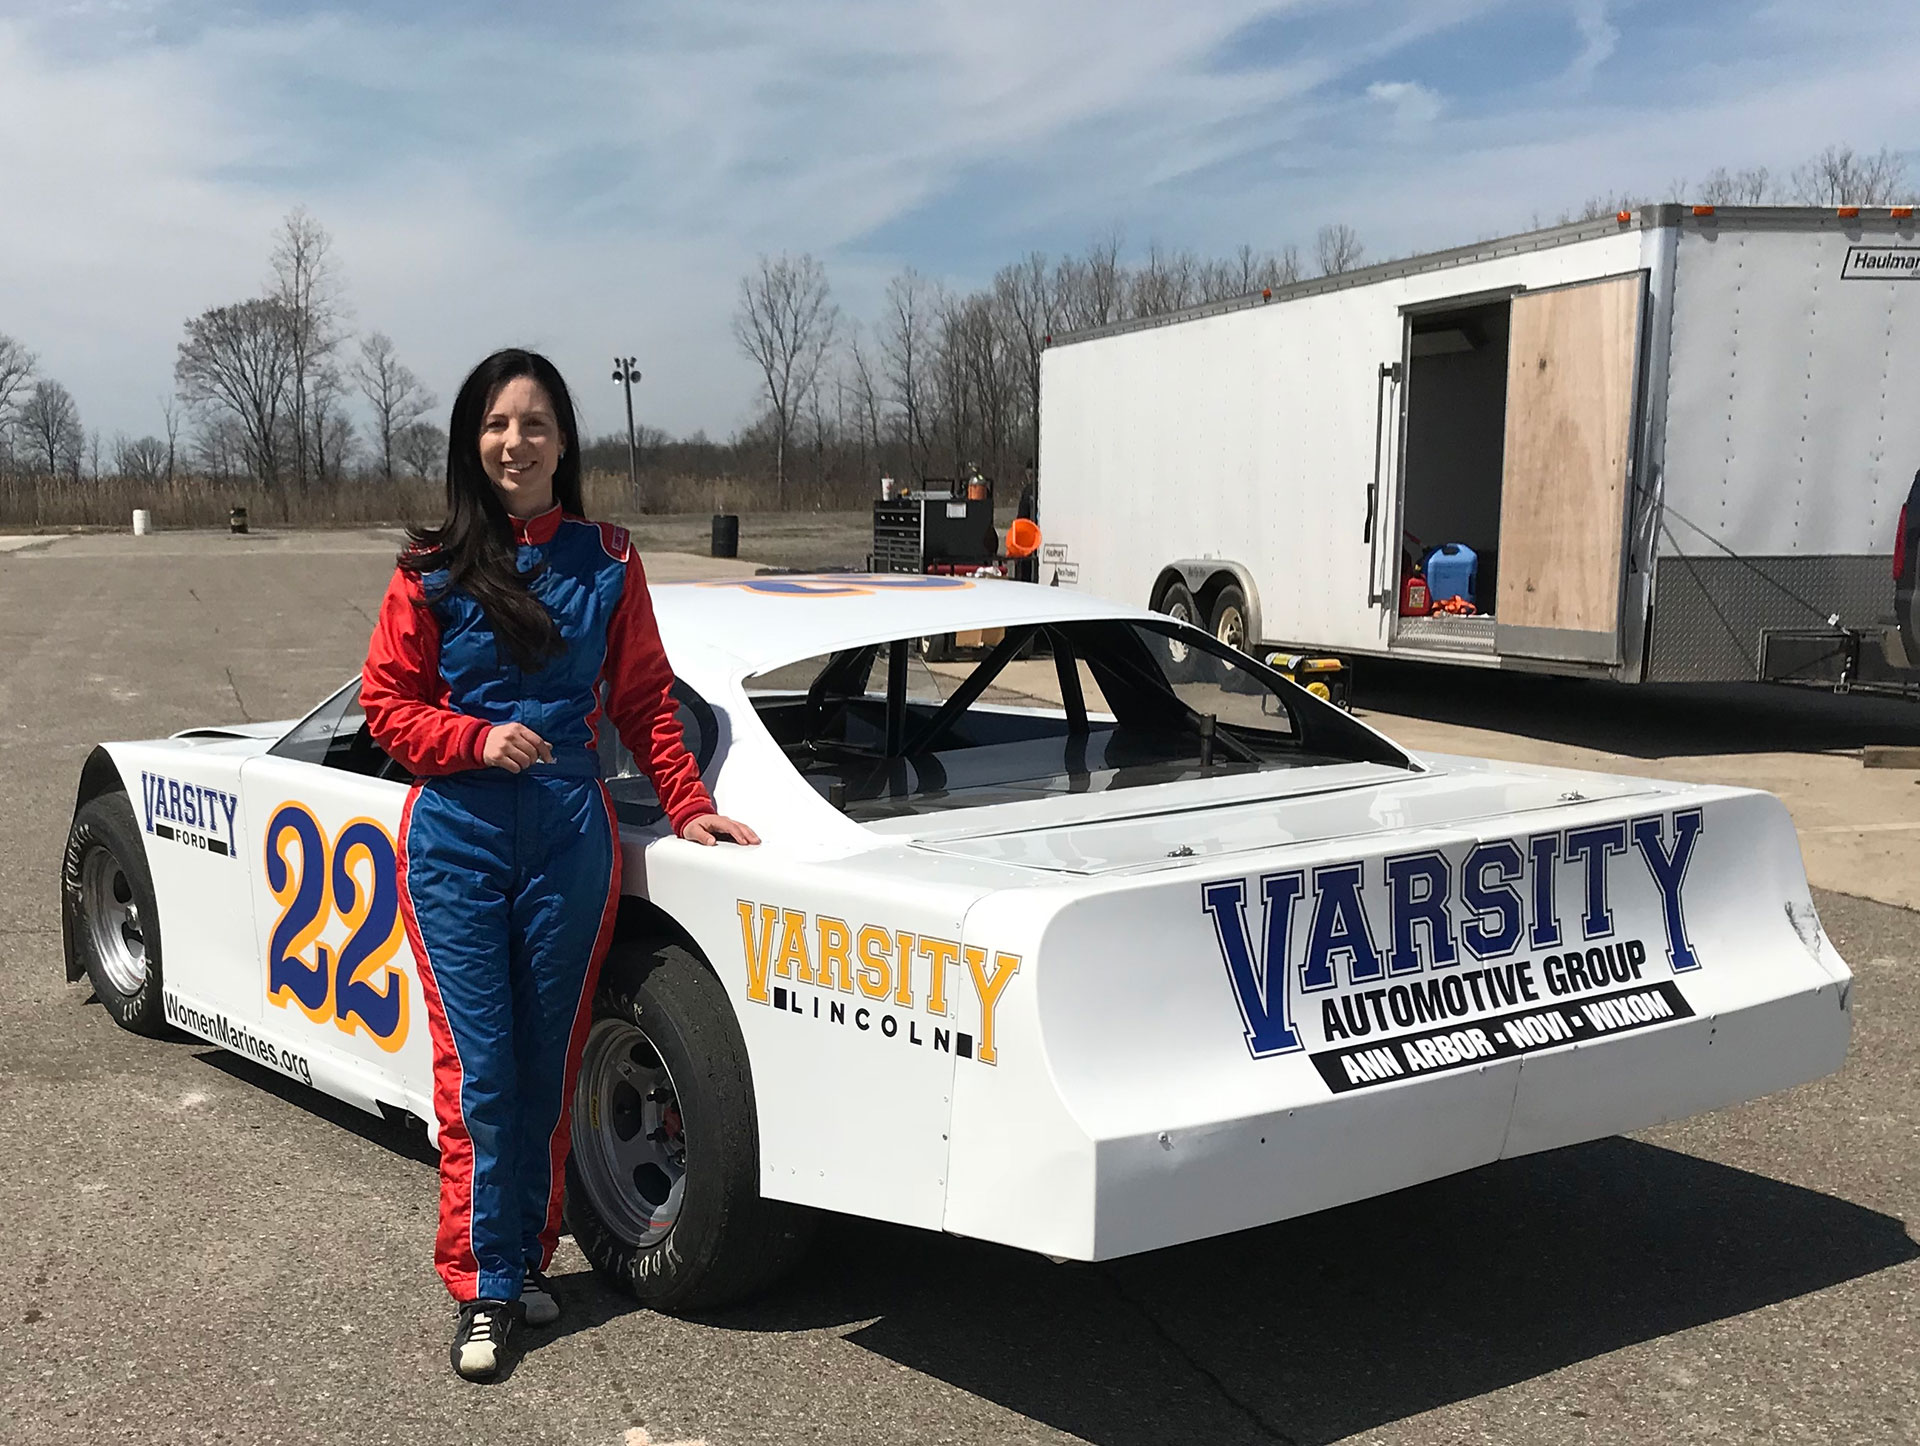 Clarity Racing a motorsports team owned and operated by Clarity Patton